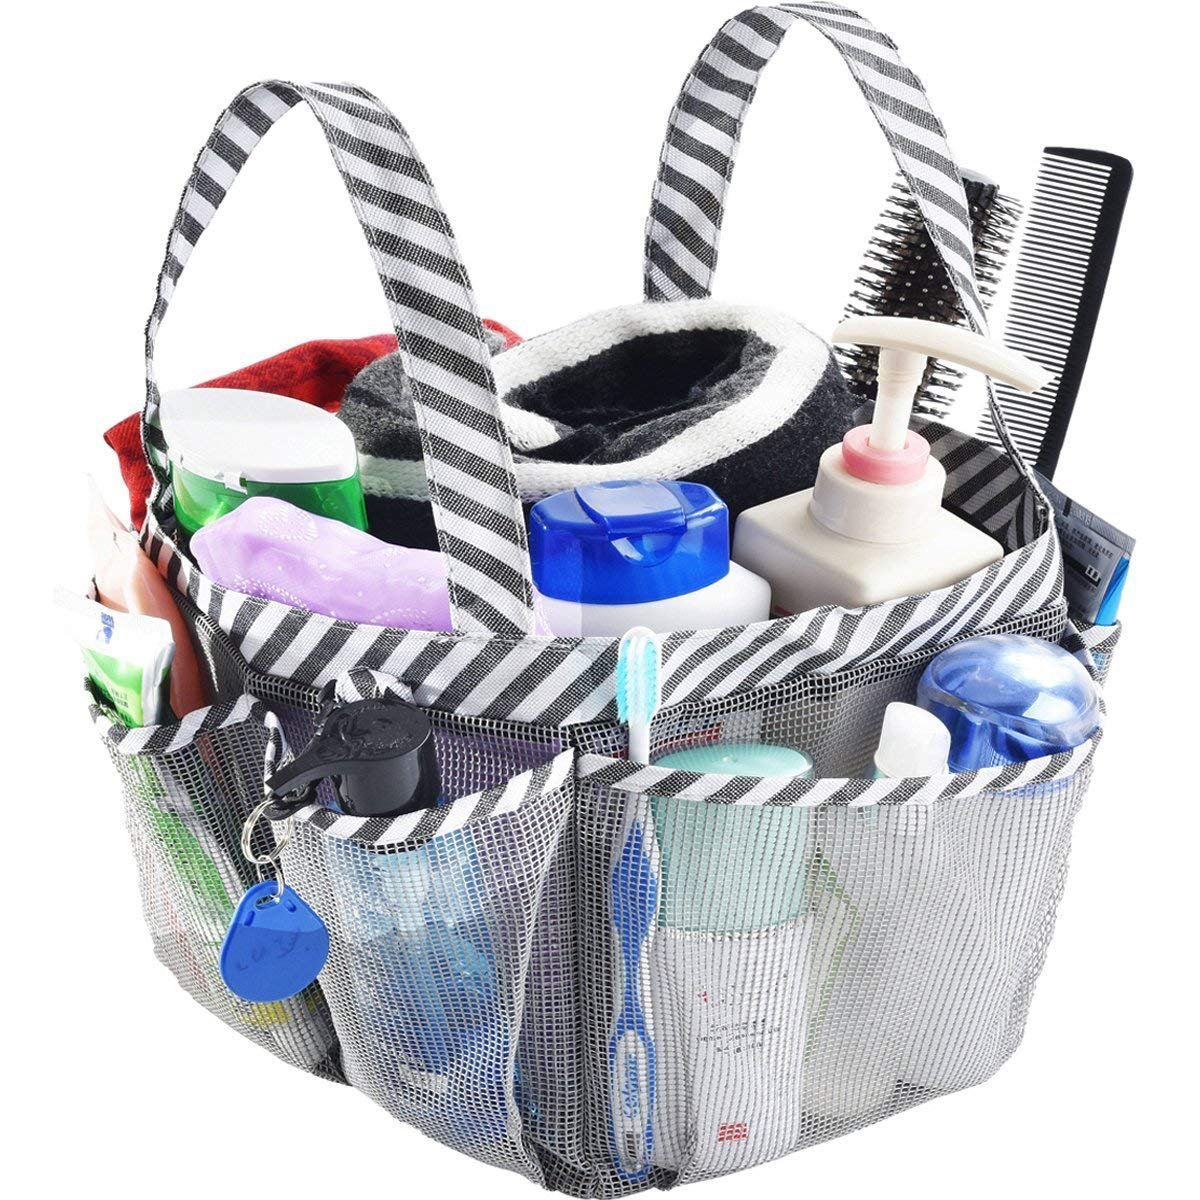 Haundry Mesh Shower Caddy Tote, Large College Dorm Bathroom Caddy Organizer with Key Hook and 2 Oxford Handles, Quick Hold, 8 Basket Pockets for Camp Gym Smart Storage X01